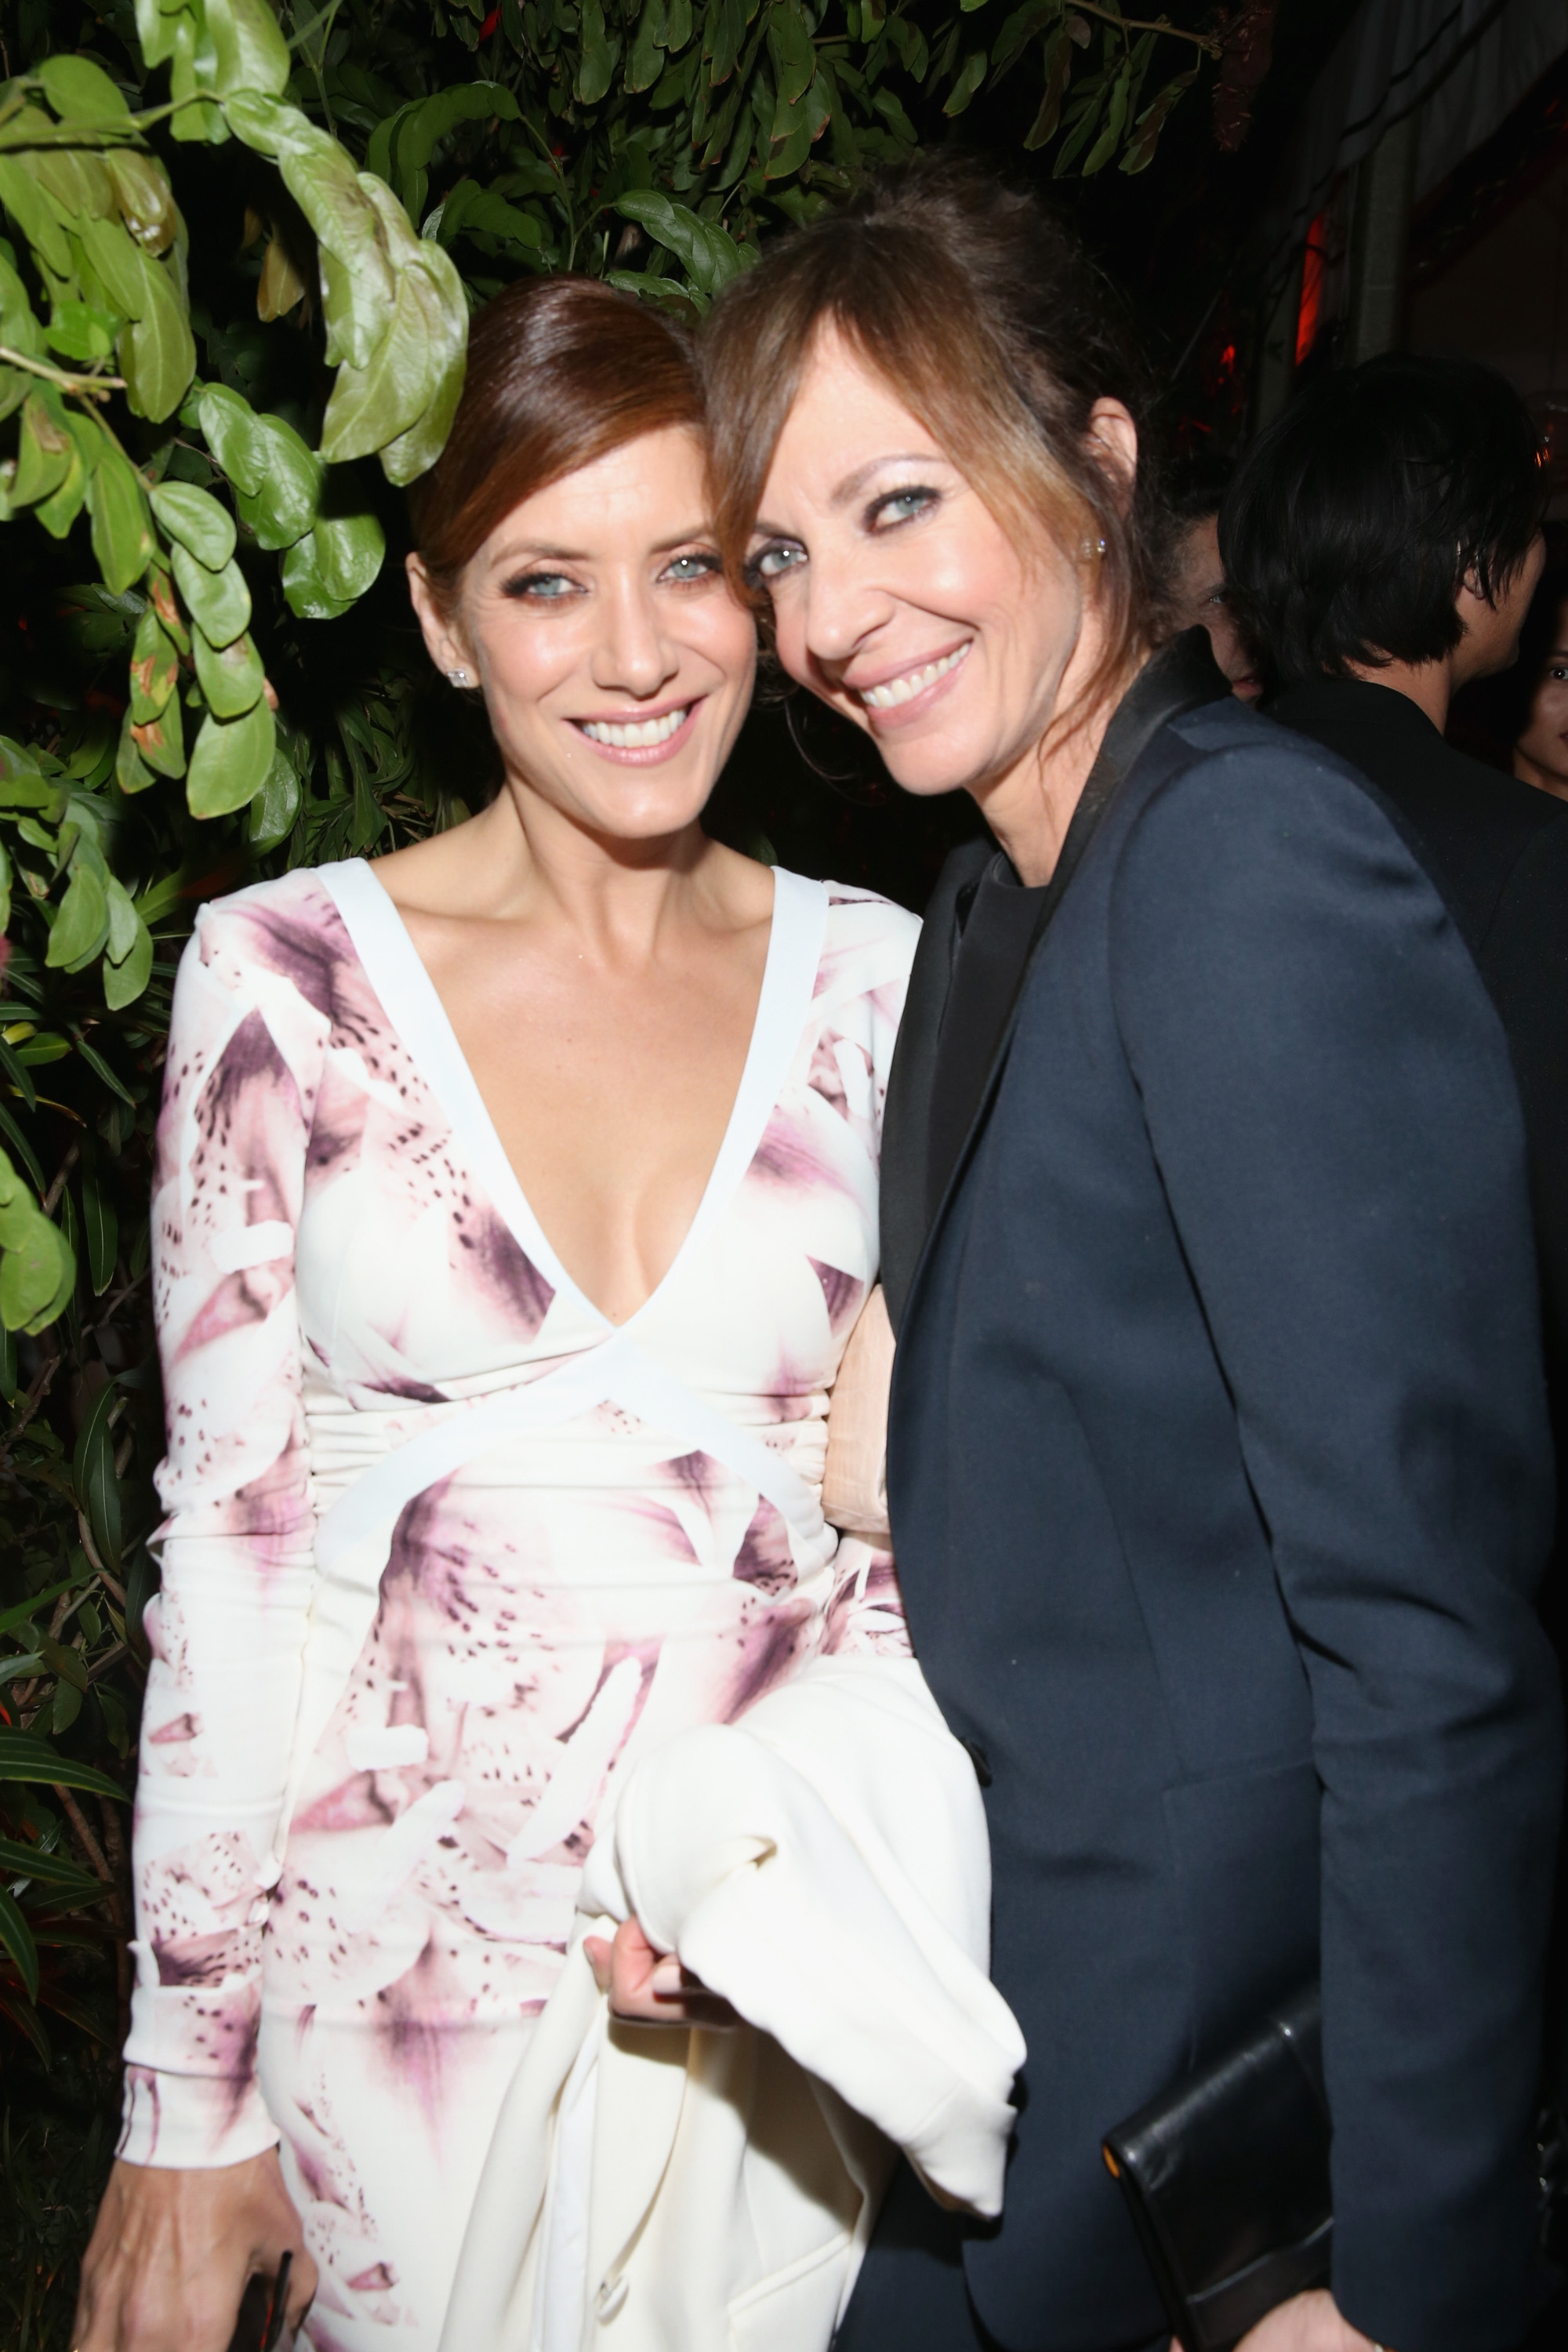 LOS ANGELES, CA - FEBRUARY 25: Actors Kate Walsh (L) and Allison Janney attend the Cadillac Oscars Week Celebration at Chateau Marmont on February 25, 2016 in Los Angeles, California. (Photo by Jonathan Leibson/Getty Images for Cadillac)